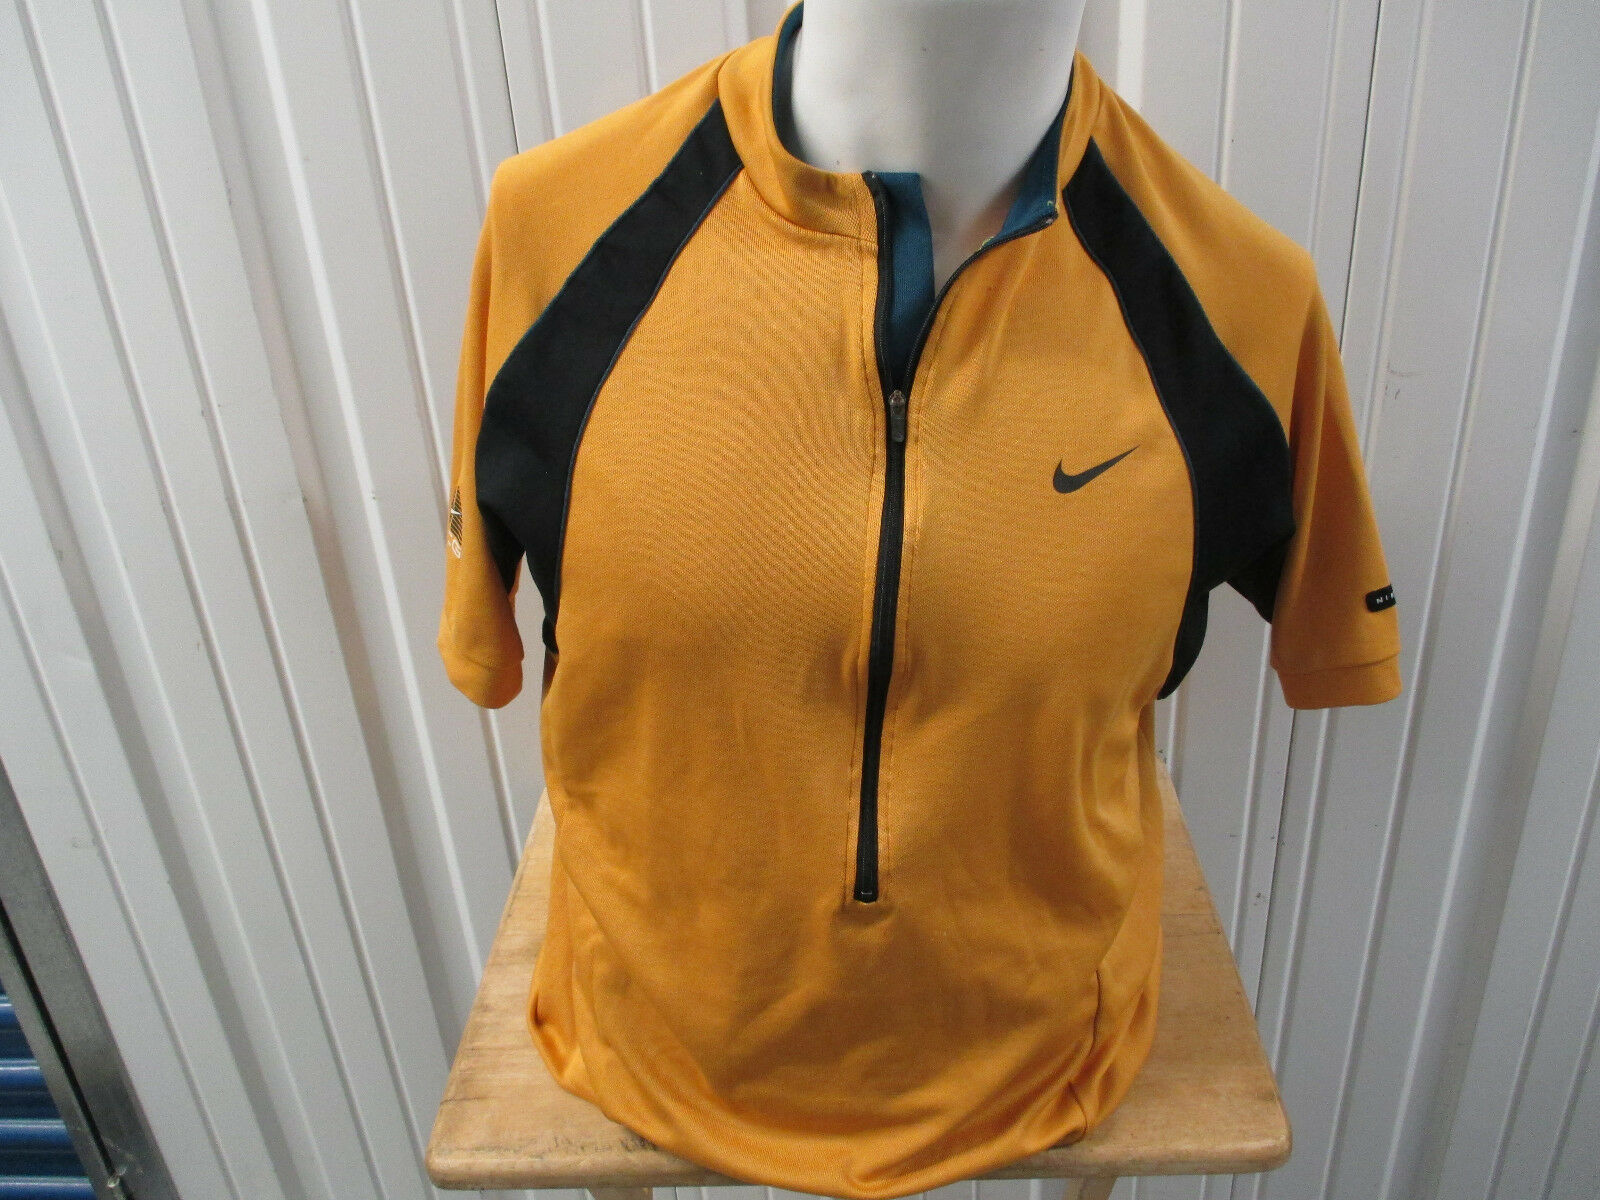 VINTAGE NIKE x ACG CYCLING MUSTARD YELLOW  DARK TEAL LARGE JERSEY 90s 00s OG LOGO  special offer